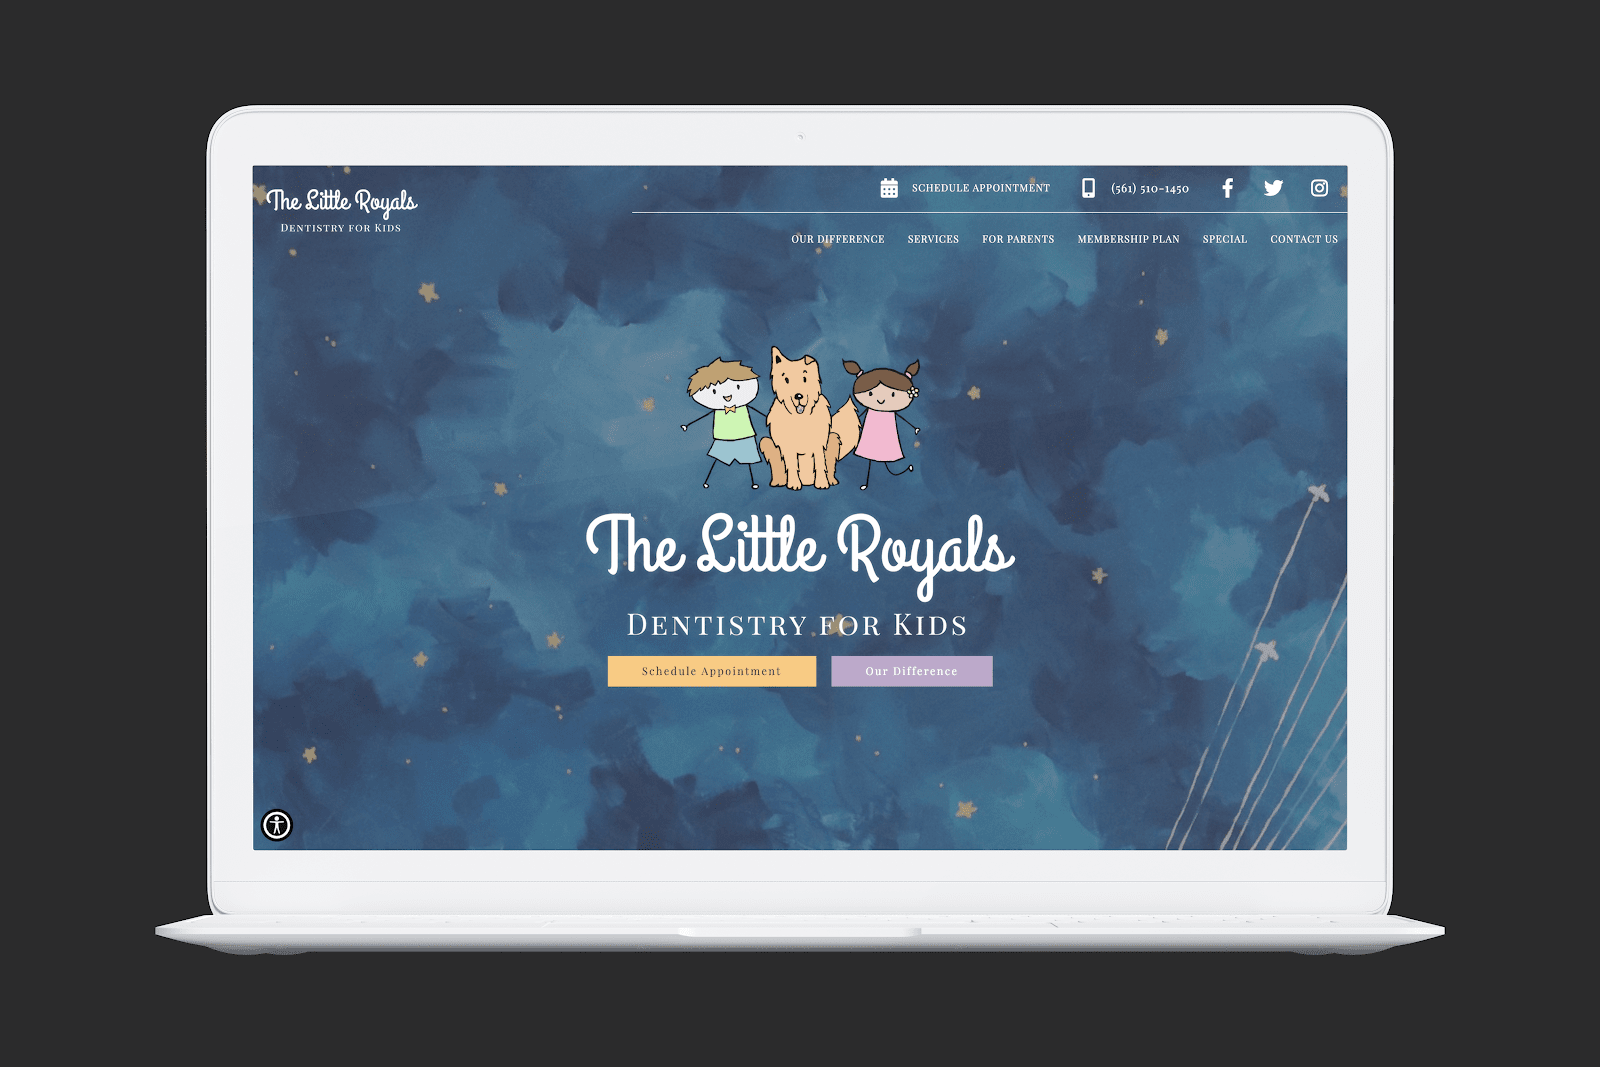 The Little Royals Dentistry for Kids Homepage Screengrab